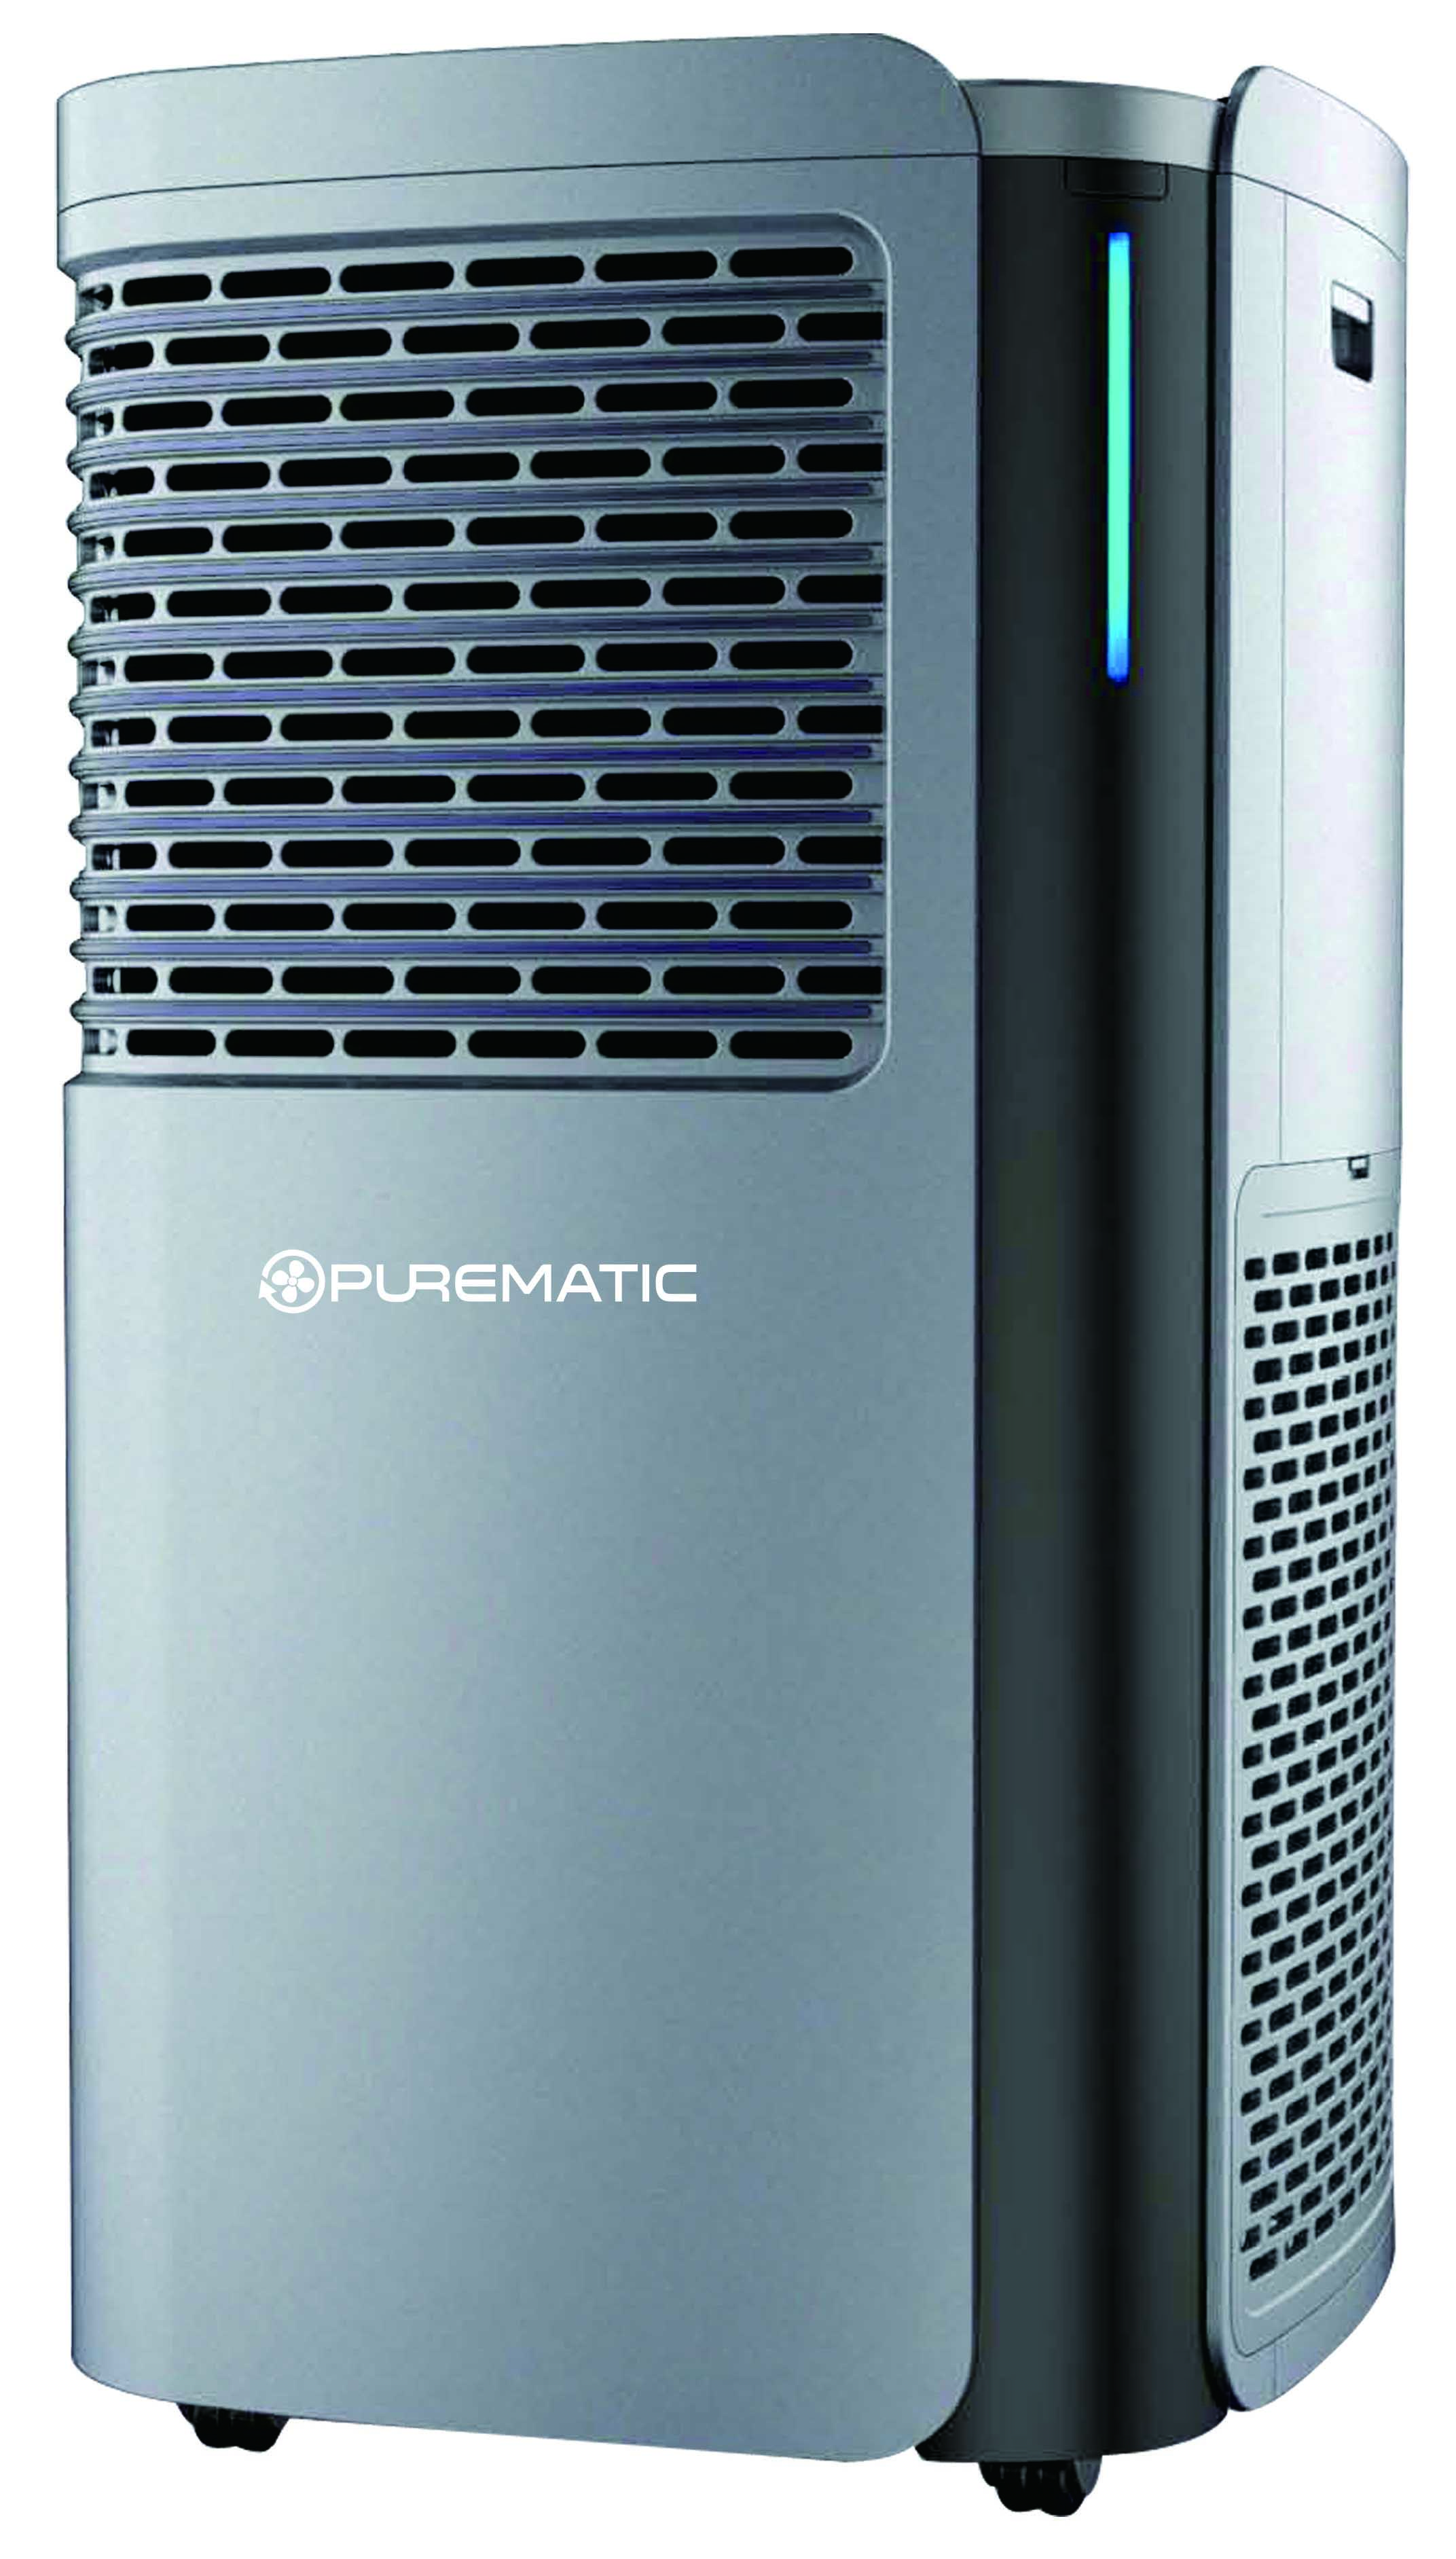 Purematic 100m2 Commercial Air Purifier